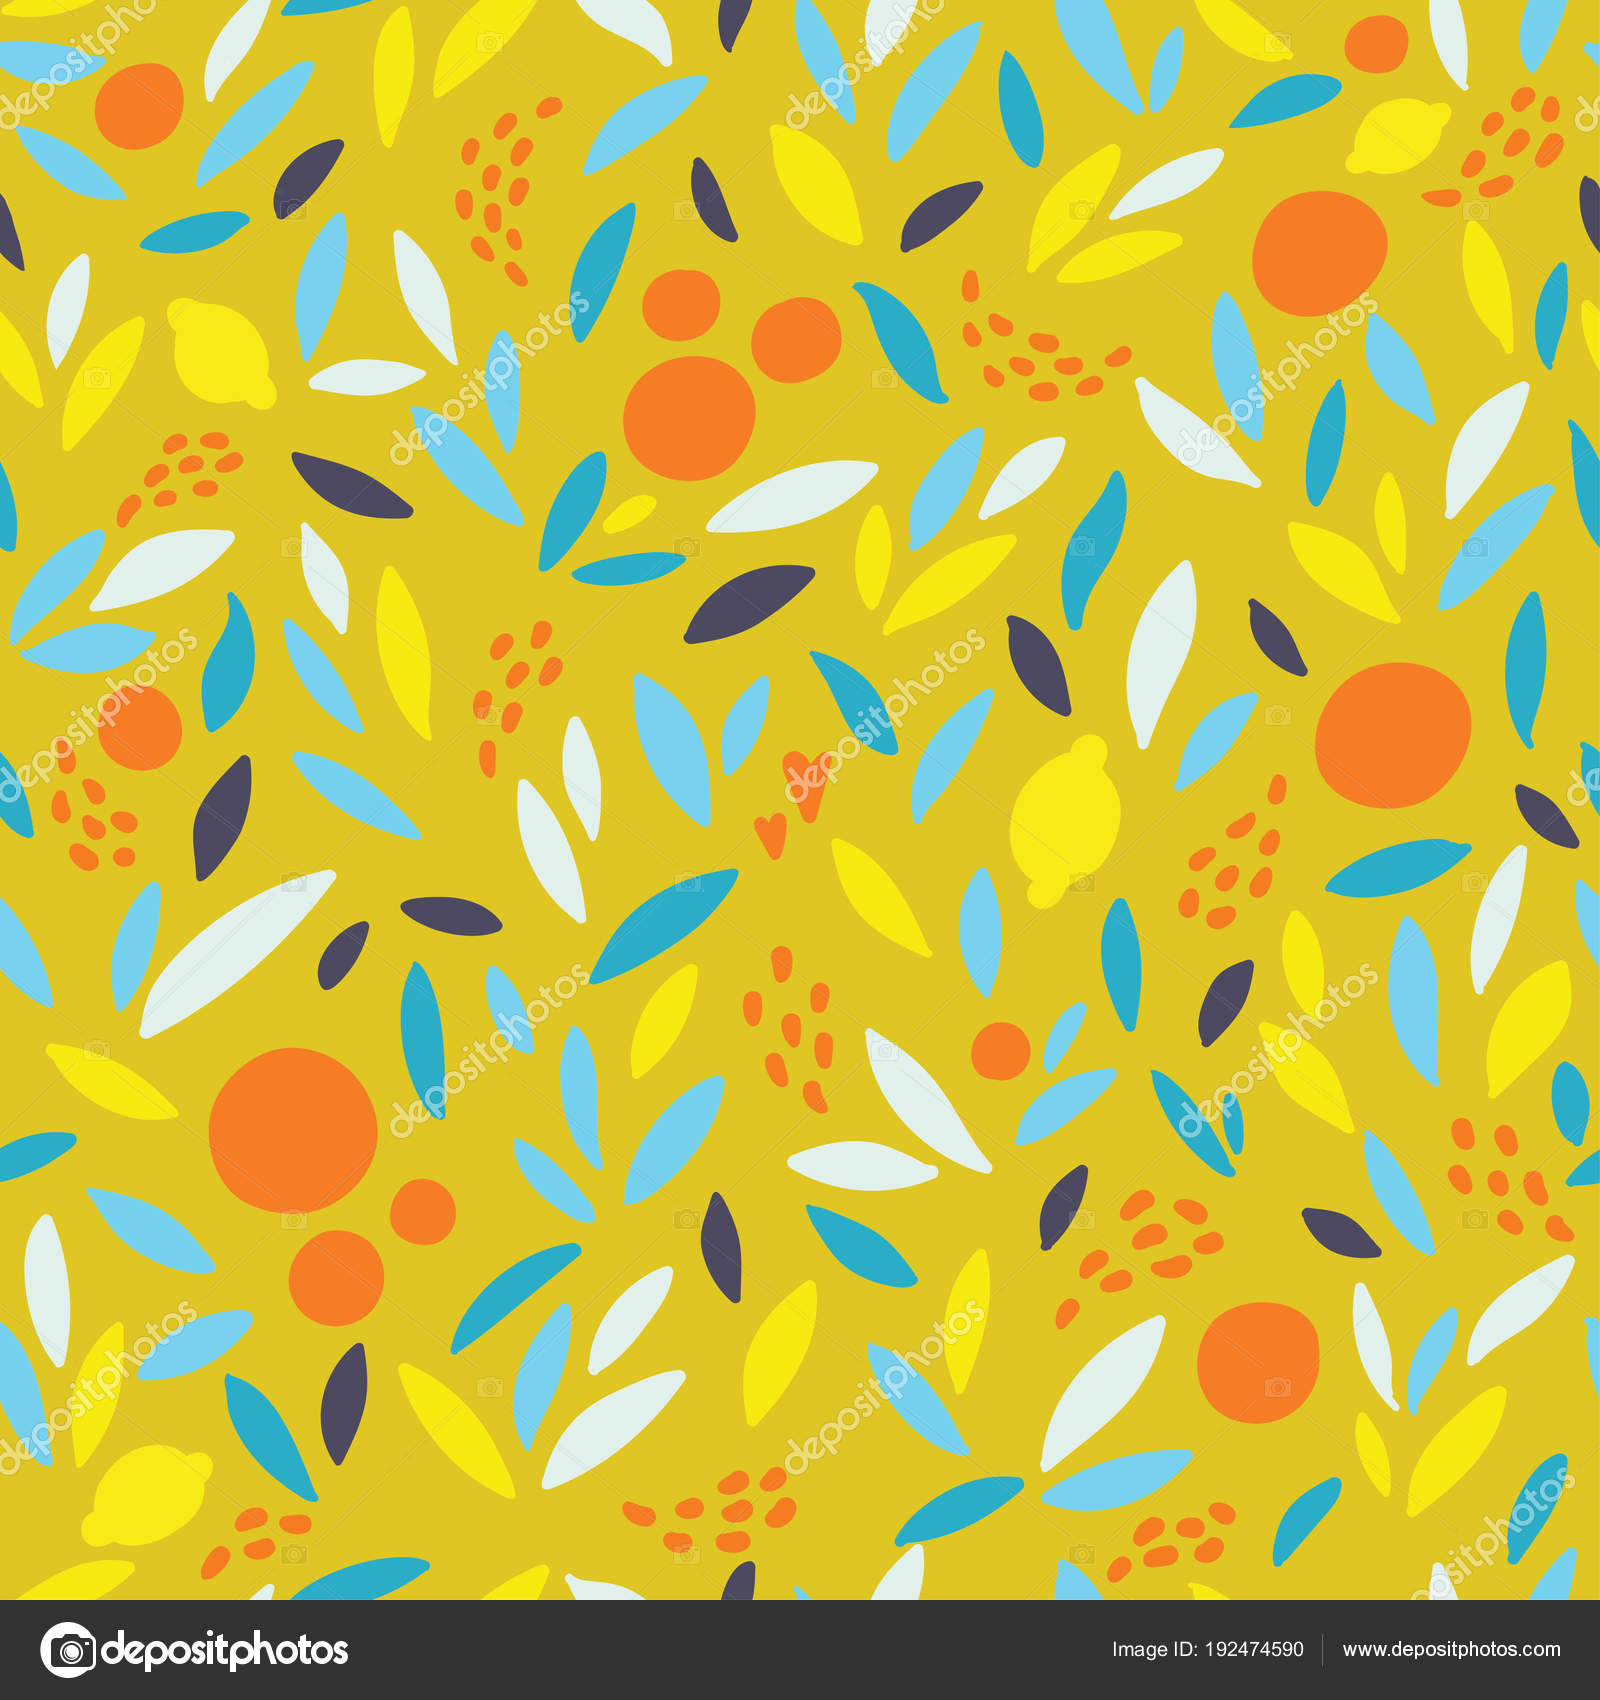 Lovely Colorful Vector Seamless Pattern With Cute Oranges Lemons